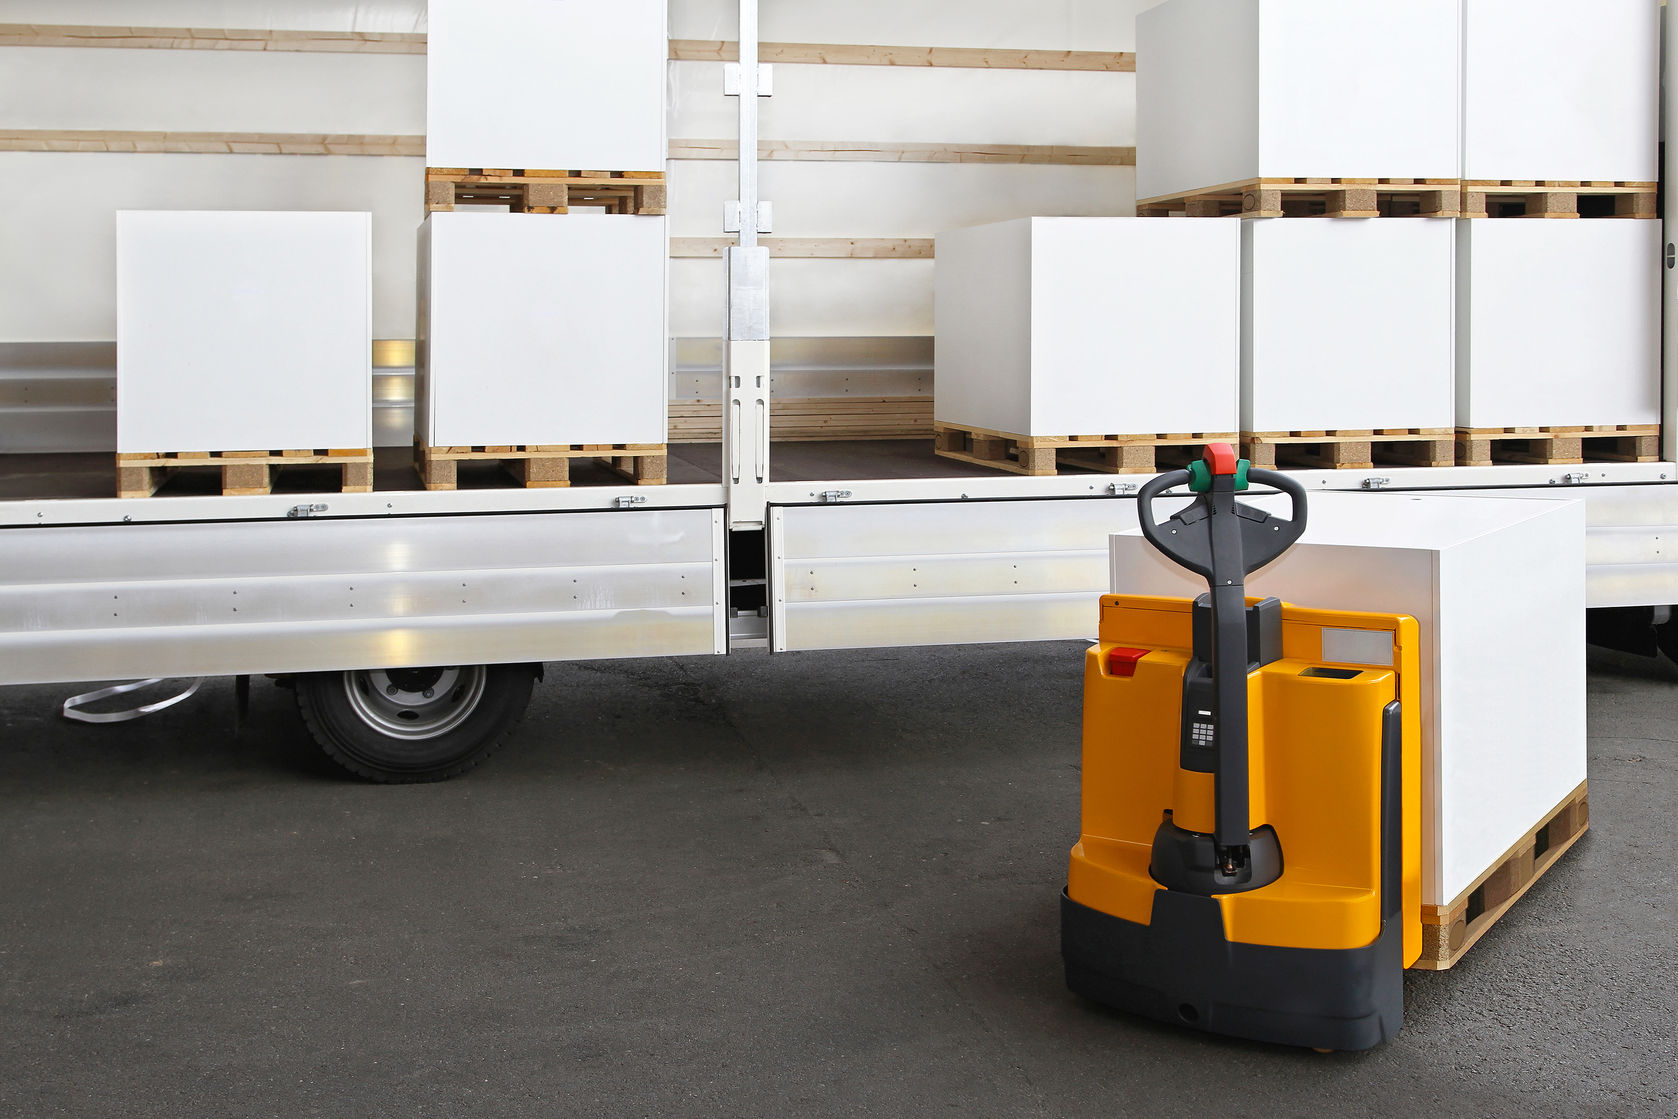 31664019 - Forklift Loading Pallets With Paper In Truck